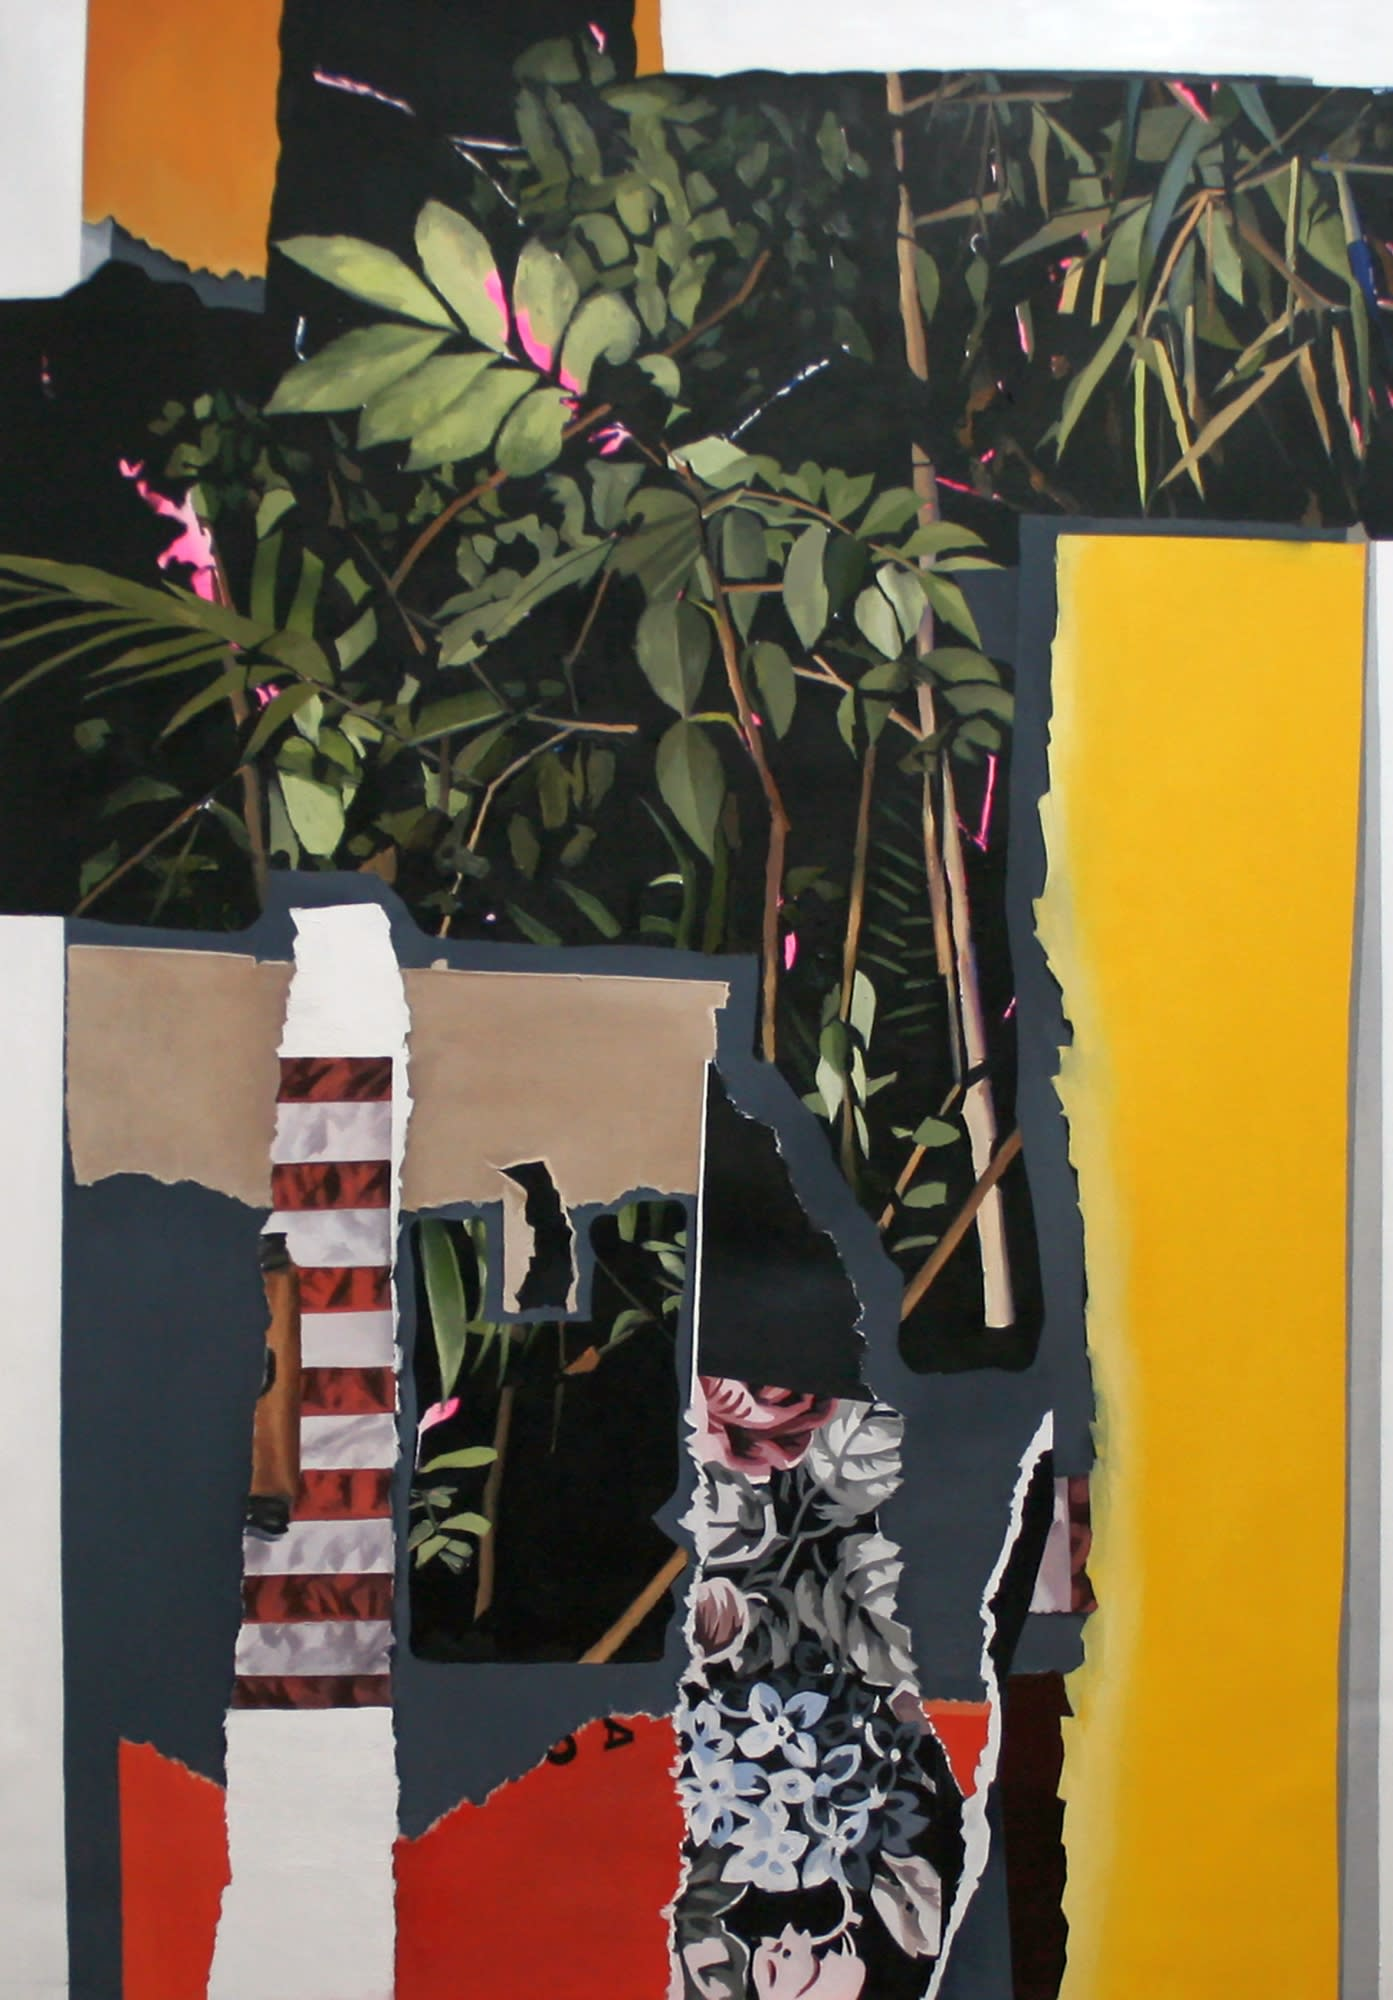 'Artificial Landscape #7' by Maria Carbonell at Gallery 133